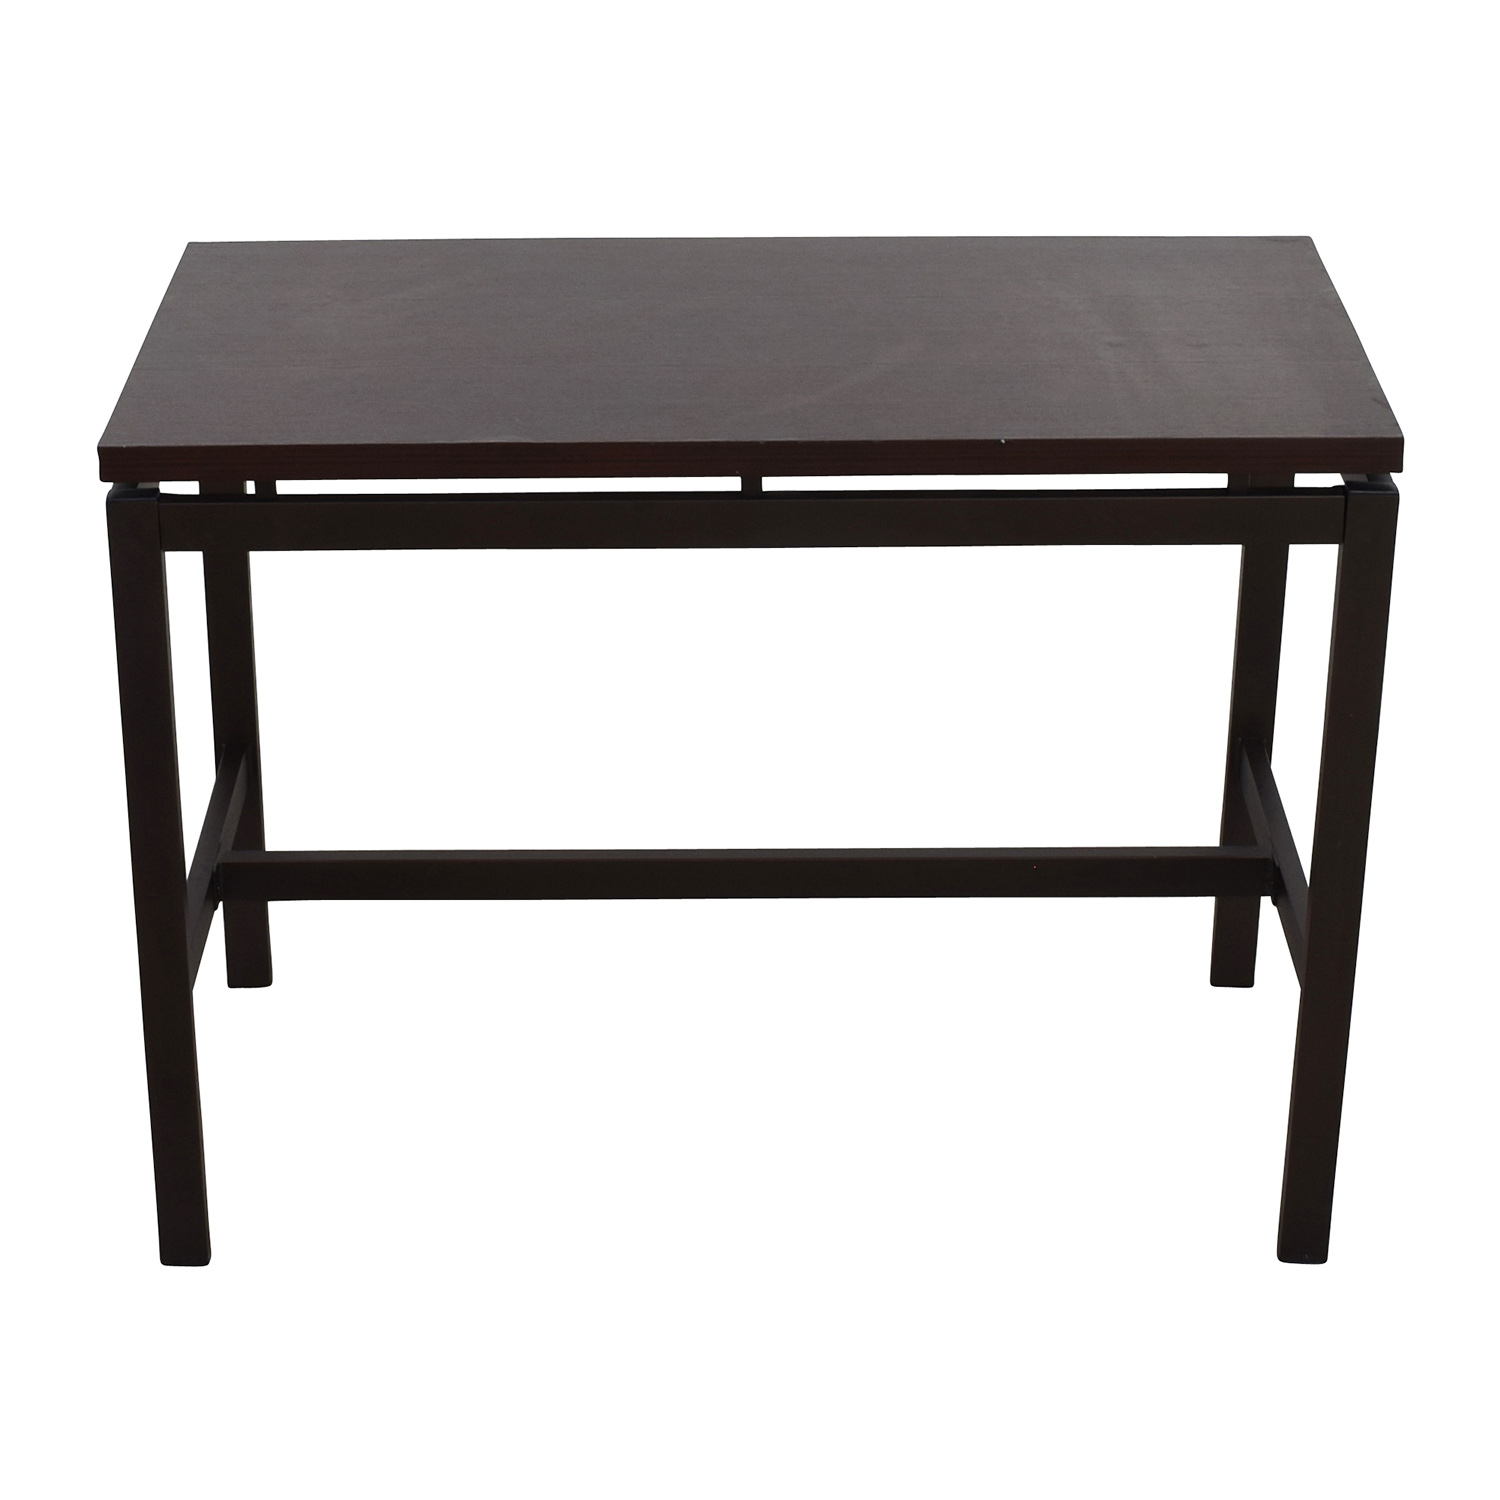 West Elm West Elm Bar and High Table Dark Brown